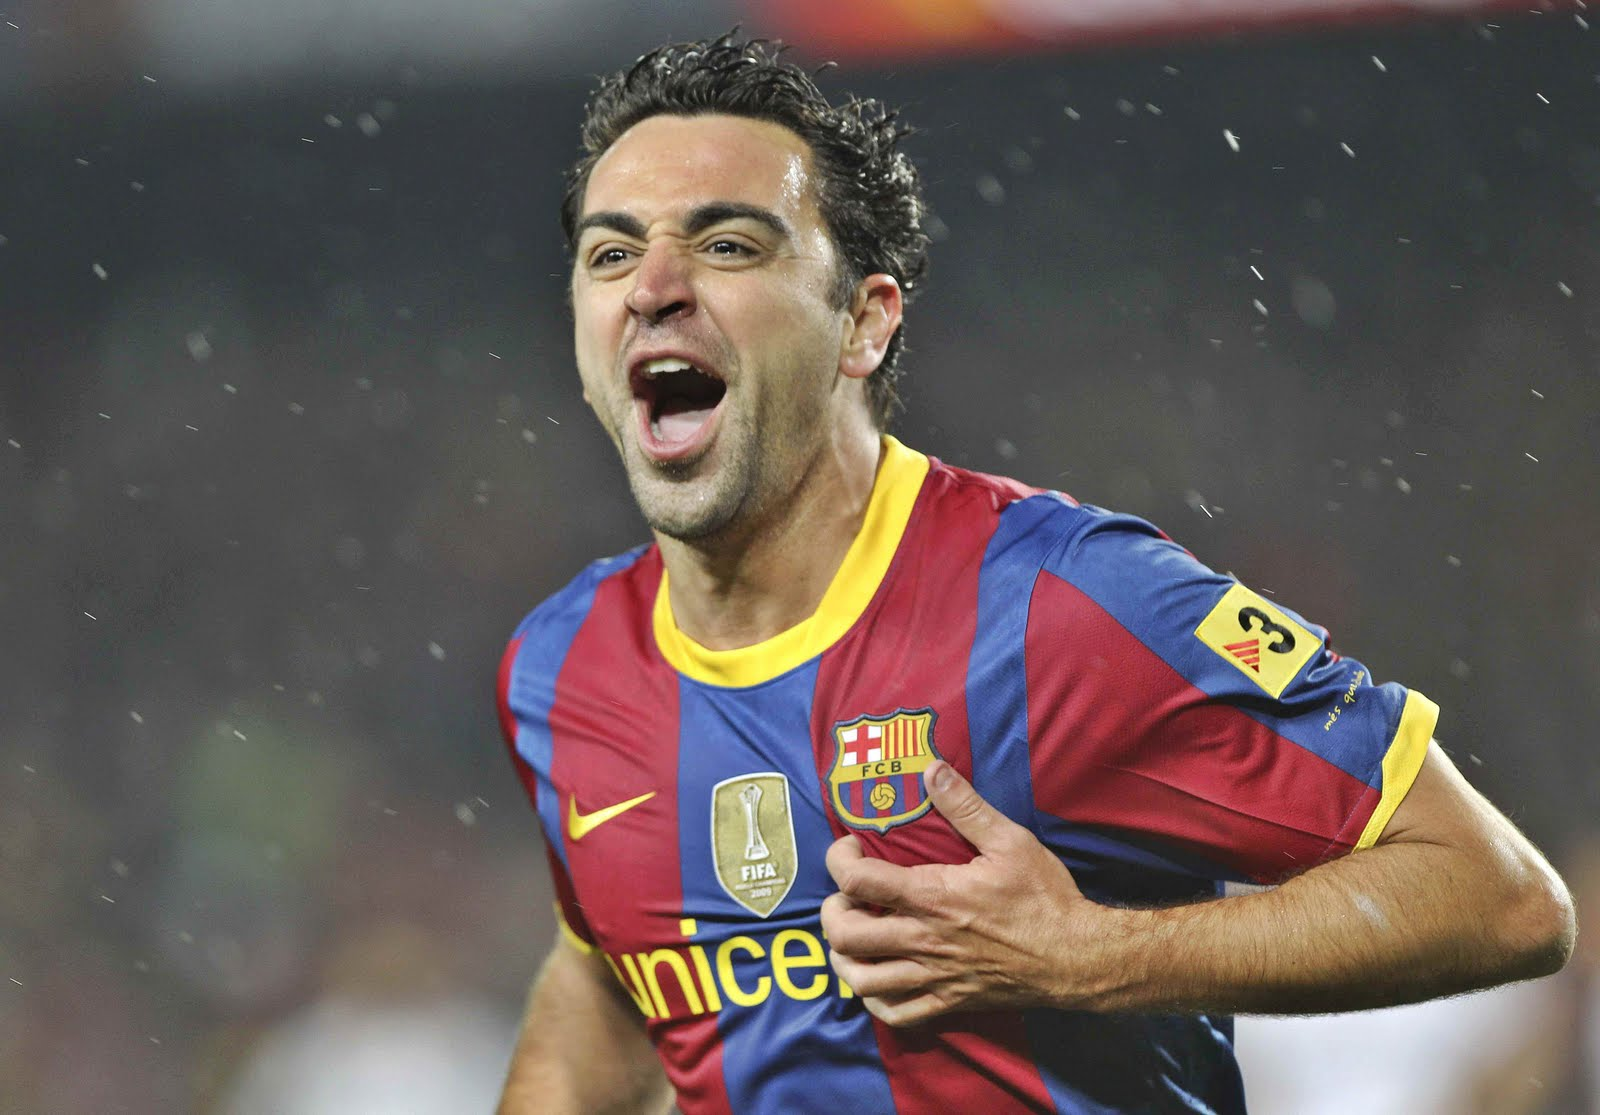 Xavi Hernandez New Wallpaper 2012-2013 03